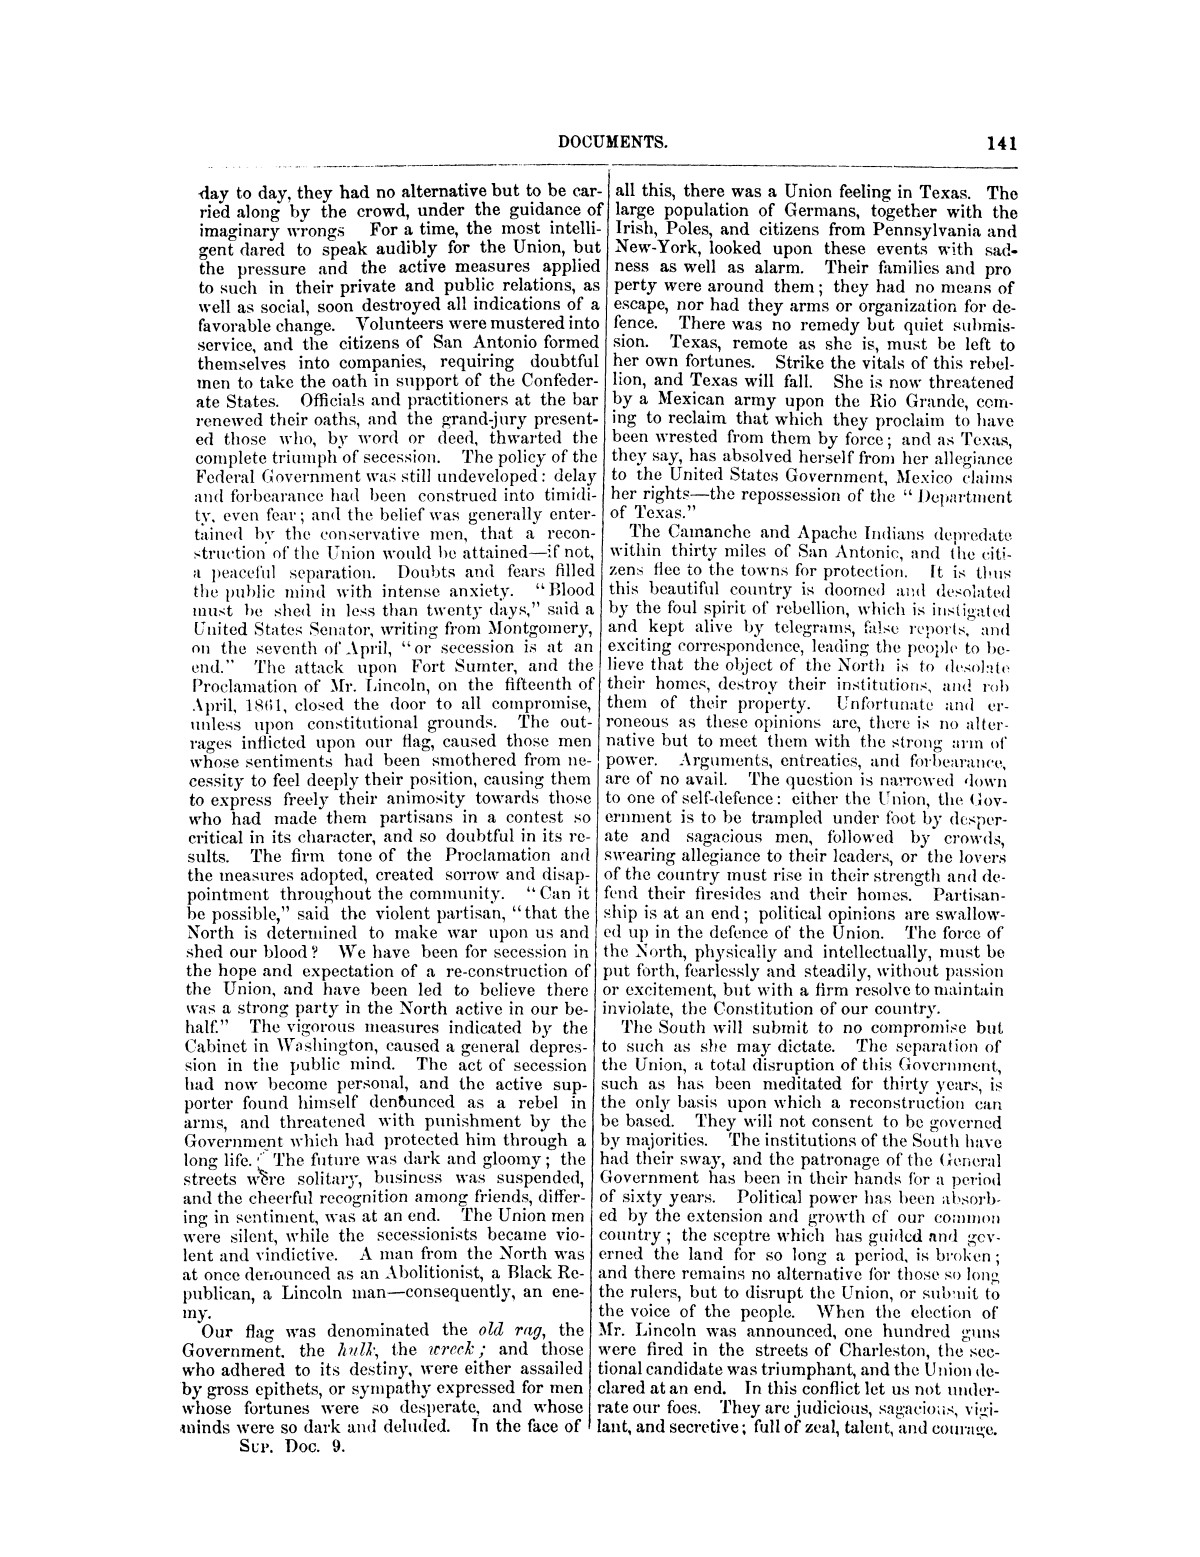 The treachery in Texas, the secession of Texas, and the arrest of the United States officers and soldiers serving in Texas. Read before the New-York Historical Society, June 25, 1861. By Major J. T. Sprague, U. S. A.                                                                                                      [Sequence #]: 35 of 36